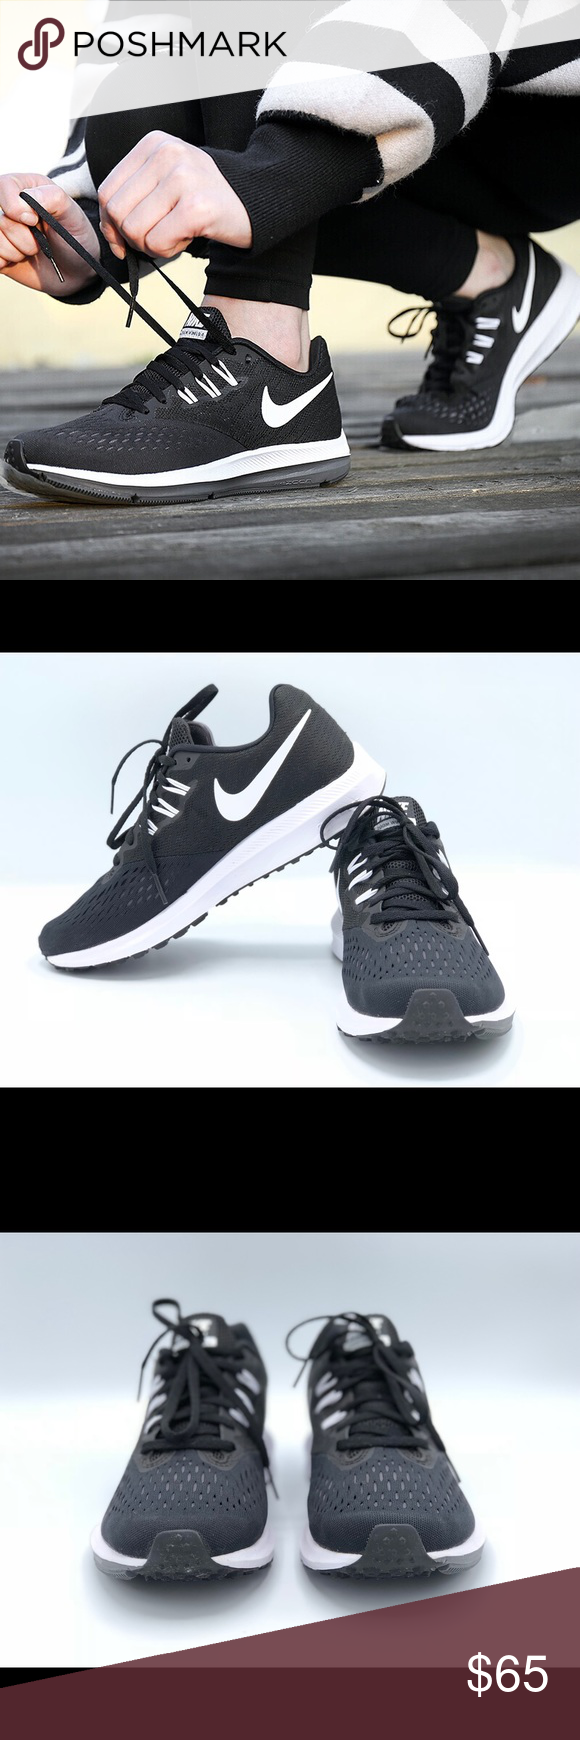 3d822f34d929 Nike Zoom Winflo 4 Women s Shoes These are almost new Nike Zoom Winflo 4 -  Women s